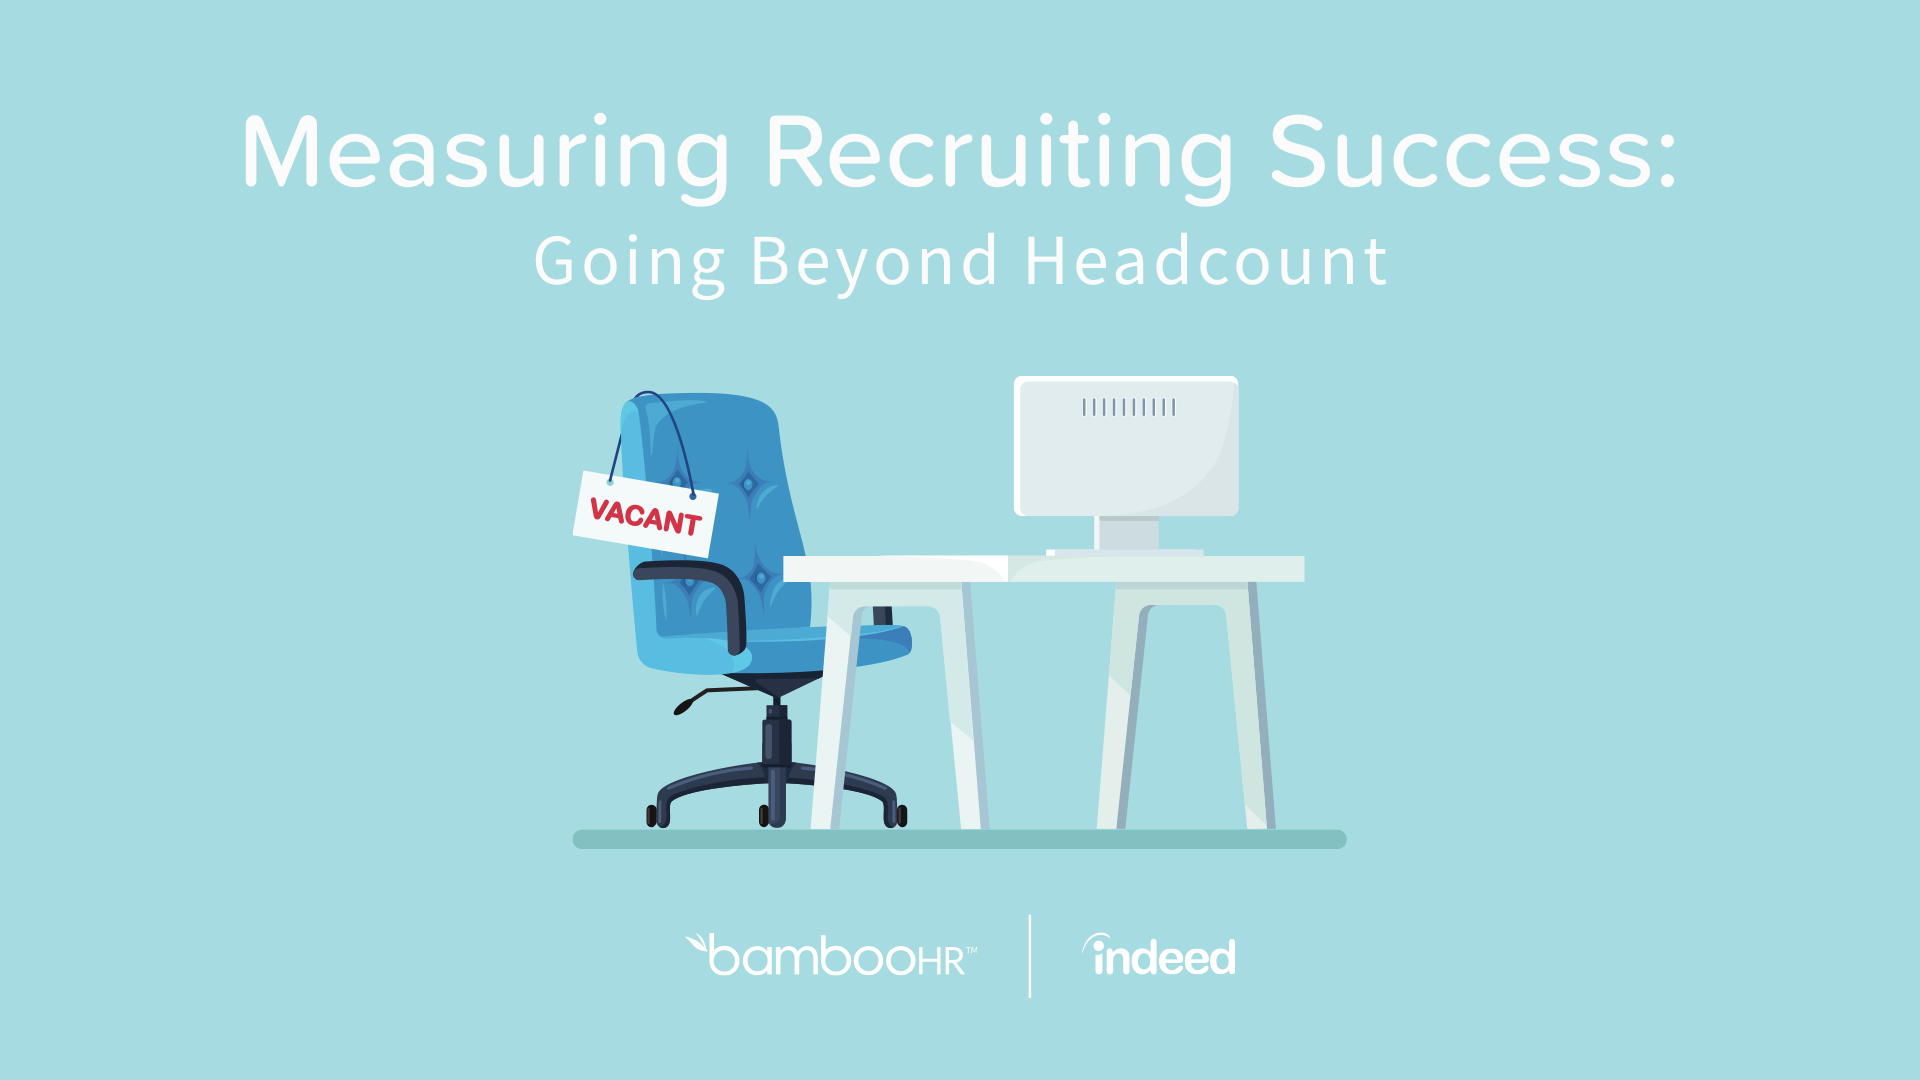 Measuring Recruiting Success: Going Beyond Headcount